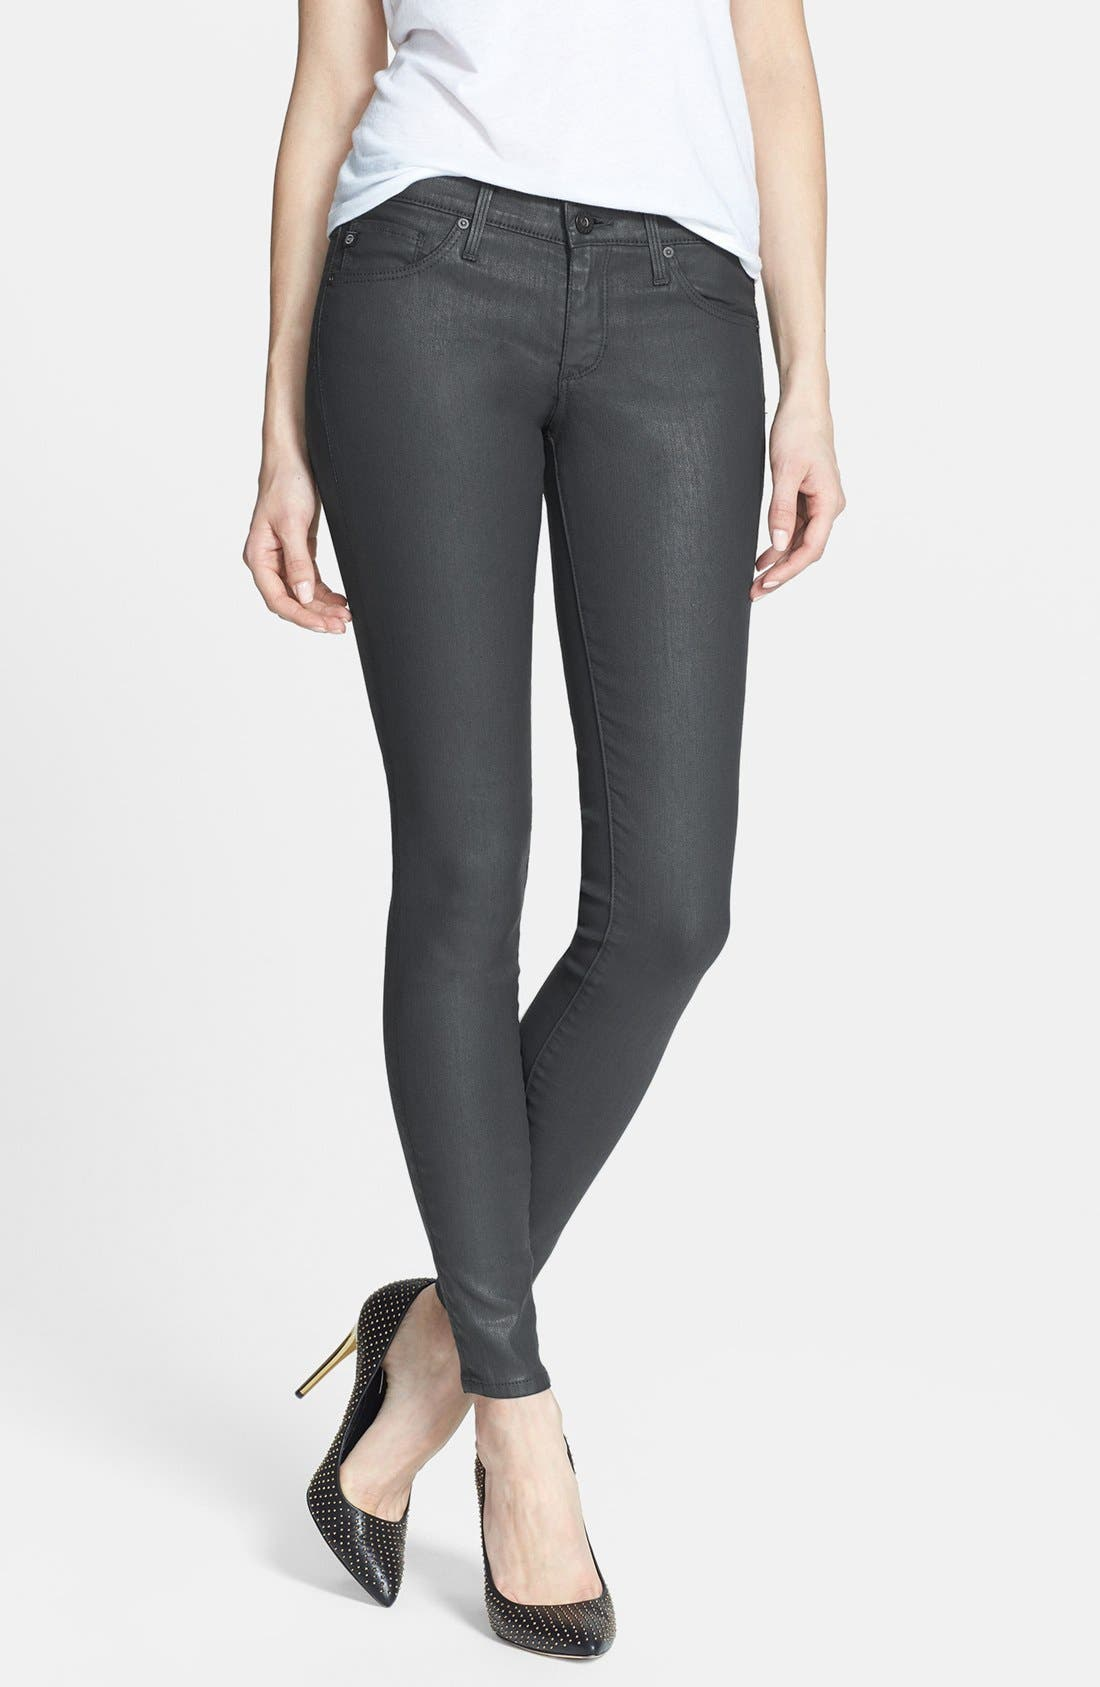 Main Image - AG 'The Absolute Legging' Coated Skinny Jeans (Dark Grey)